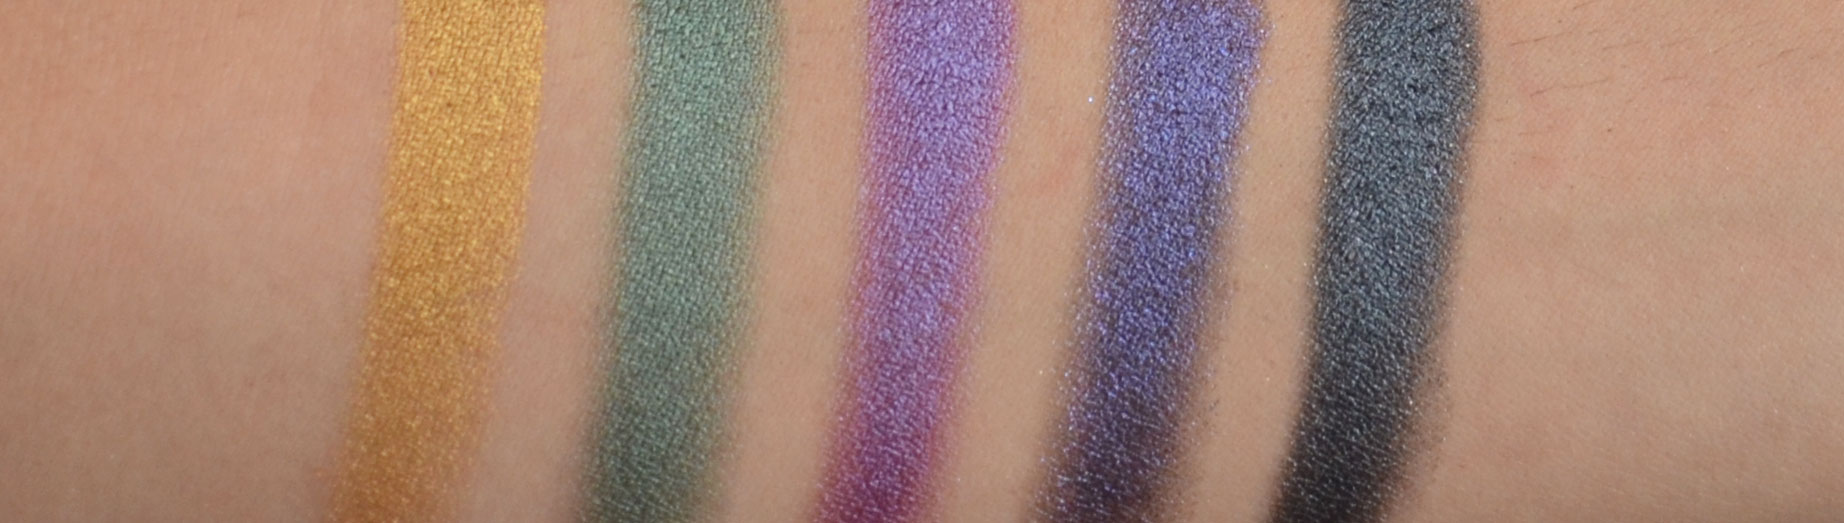 Heavy Metal Glitter Eyeliner by Urban Decay #18